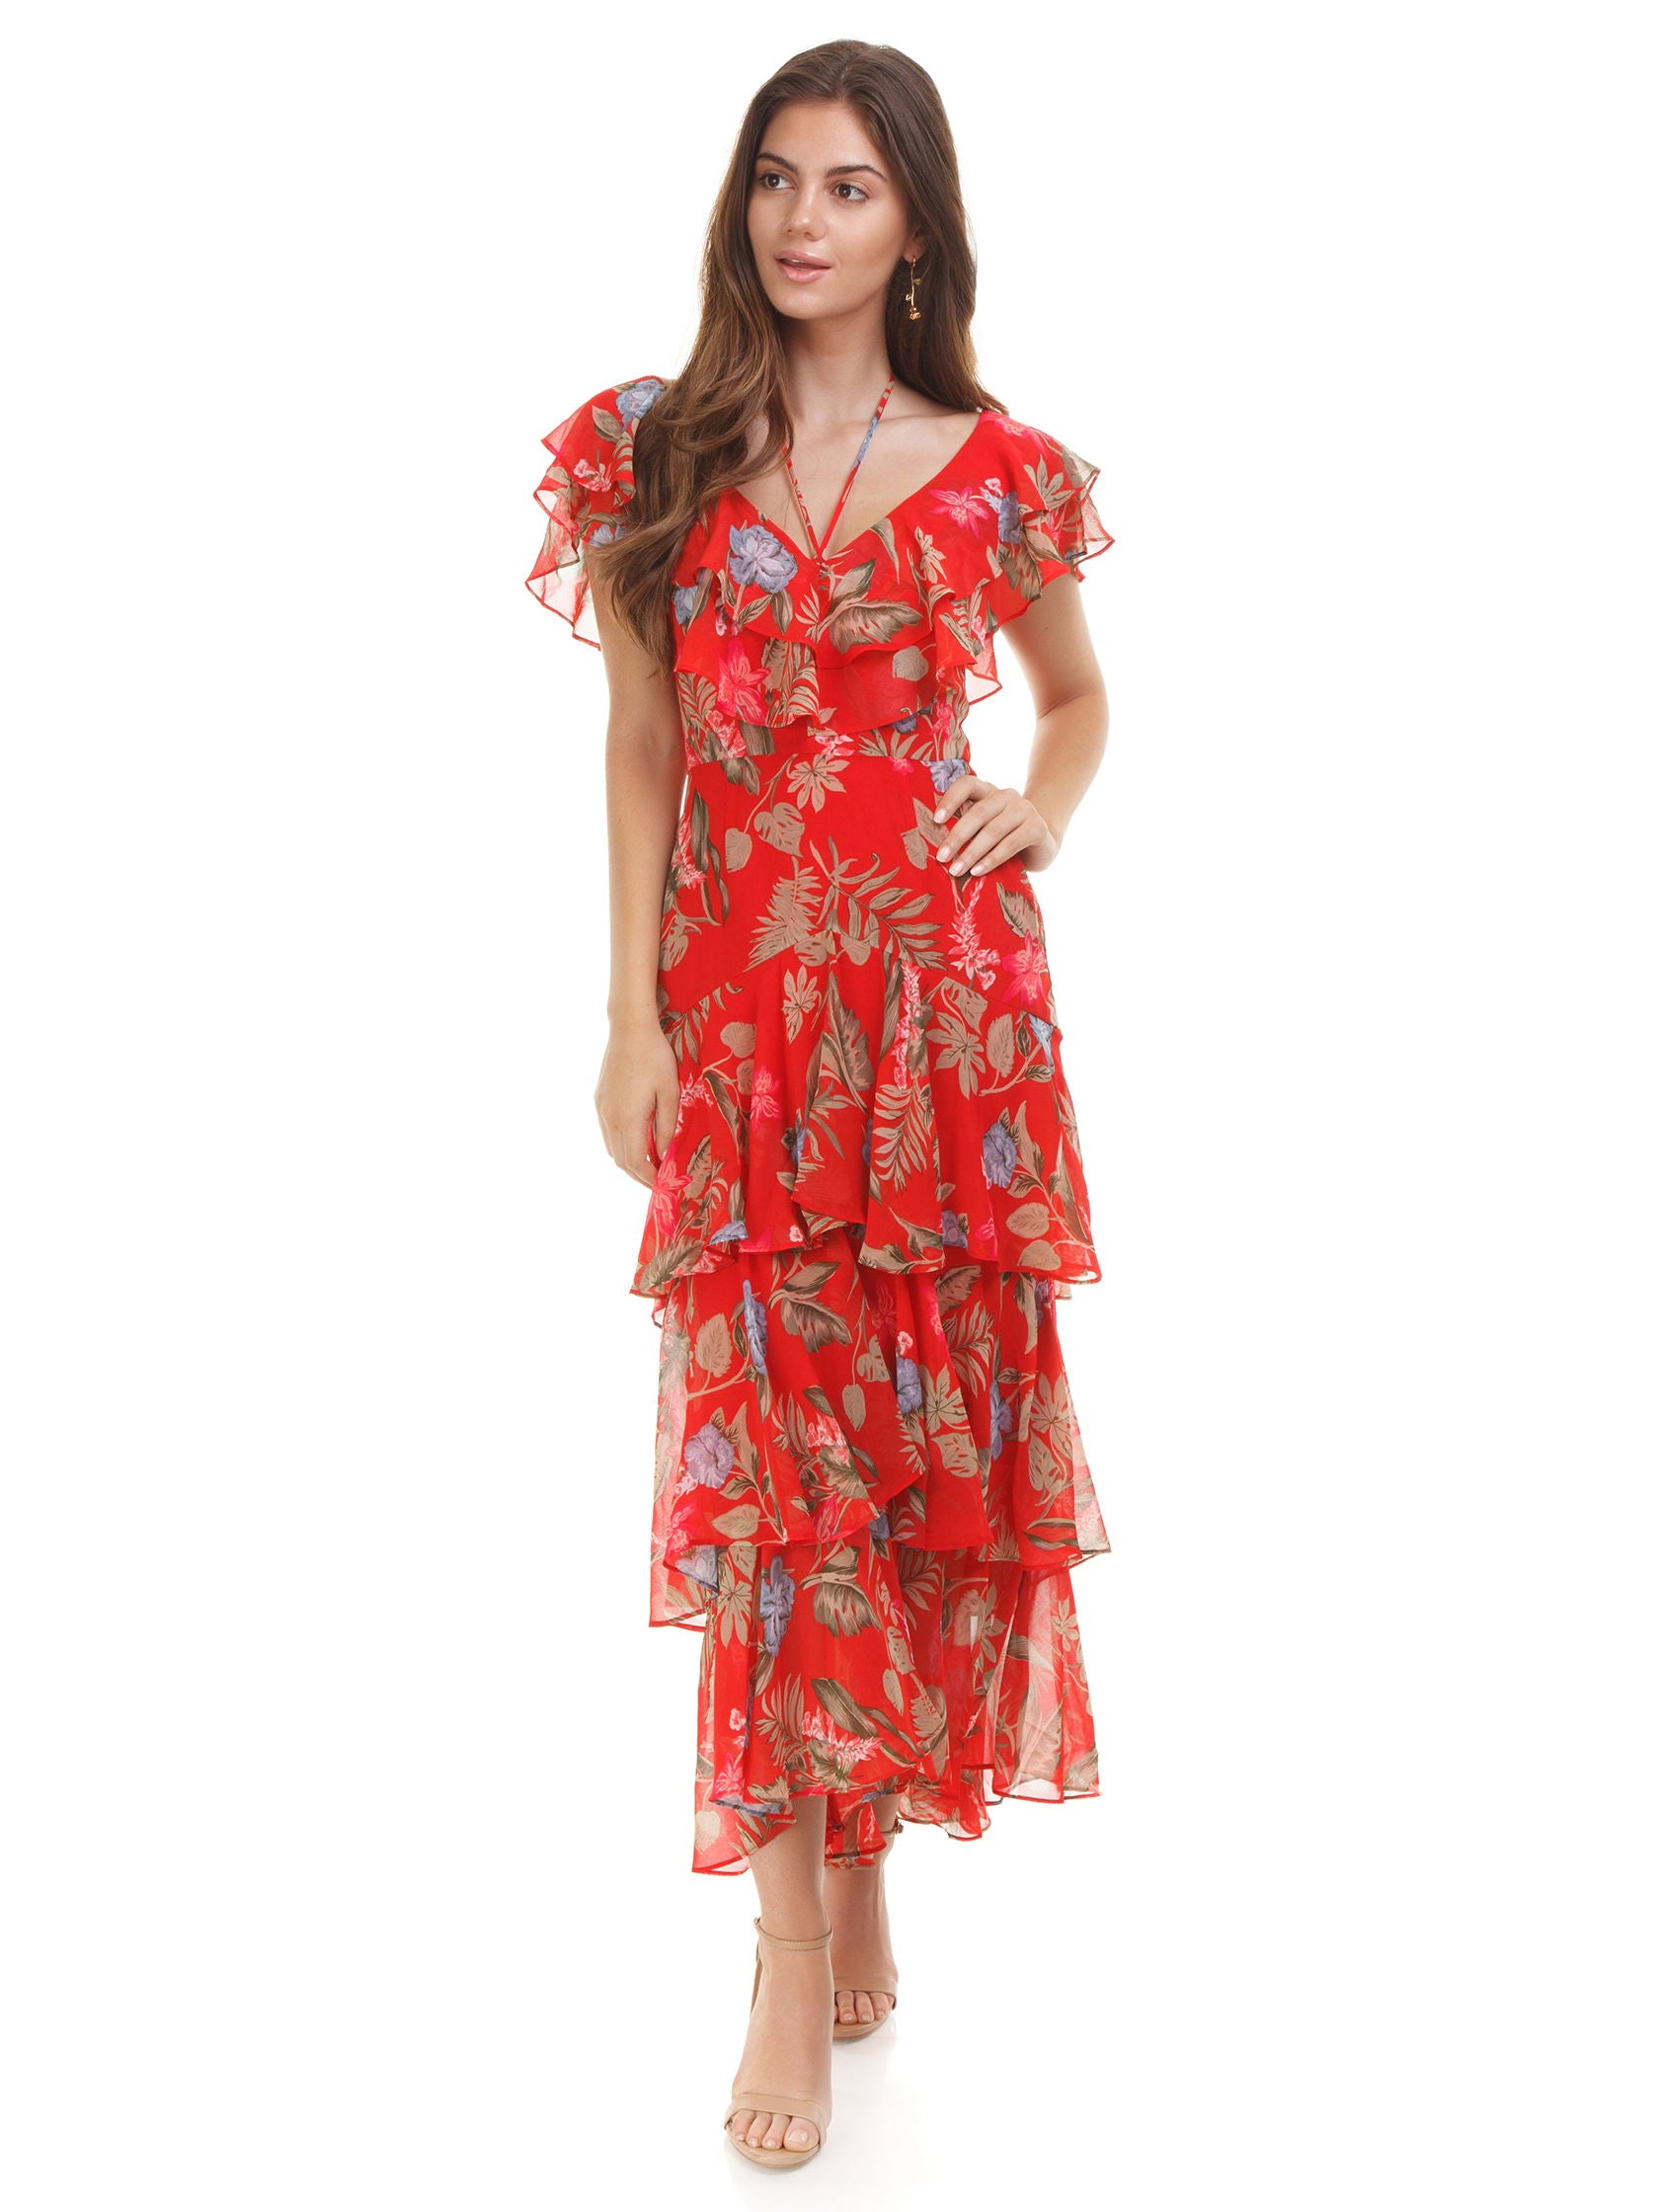 Girl outfit in a dress rental from WAYF called Chelsea Tiered Ruffle Maxi Dress